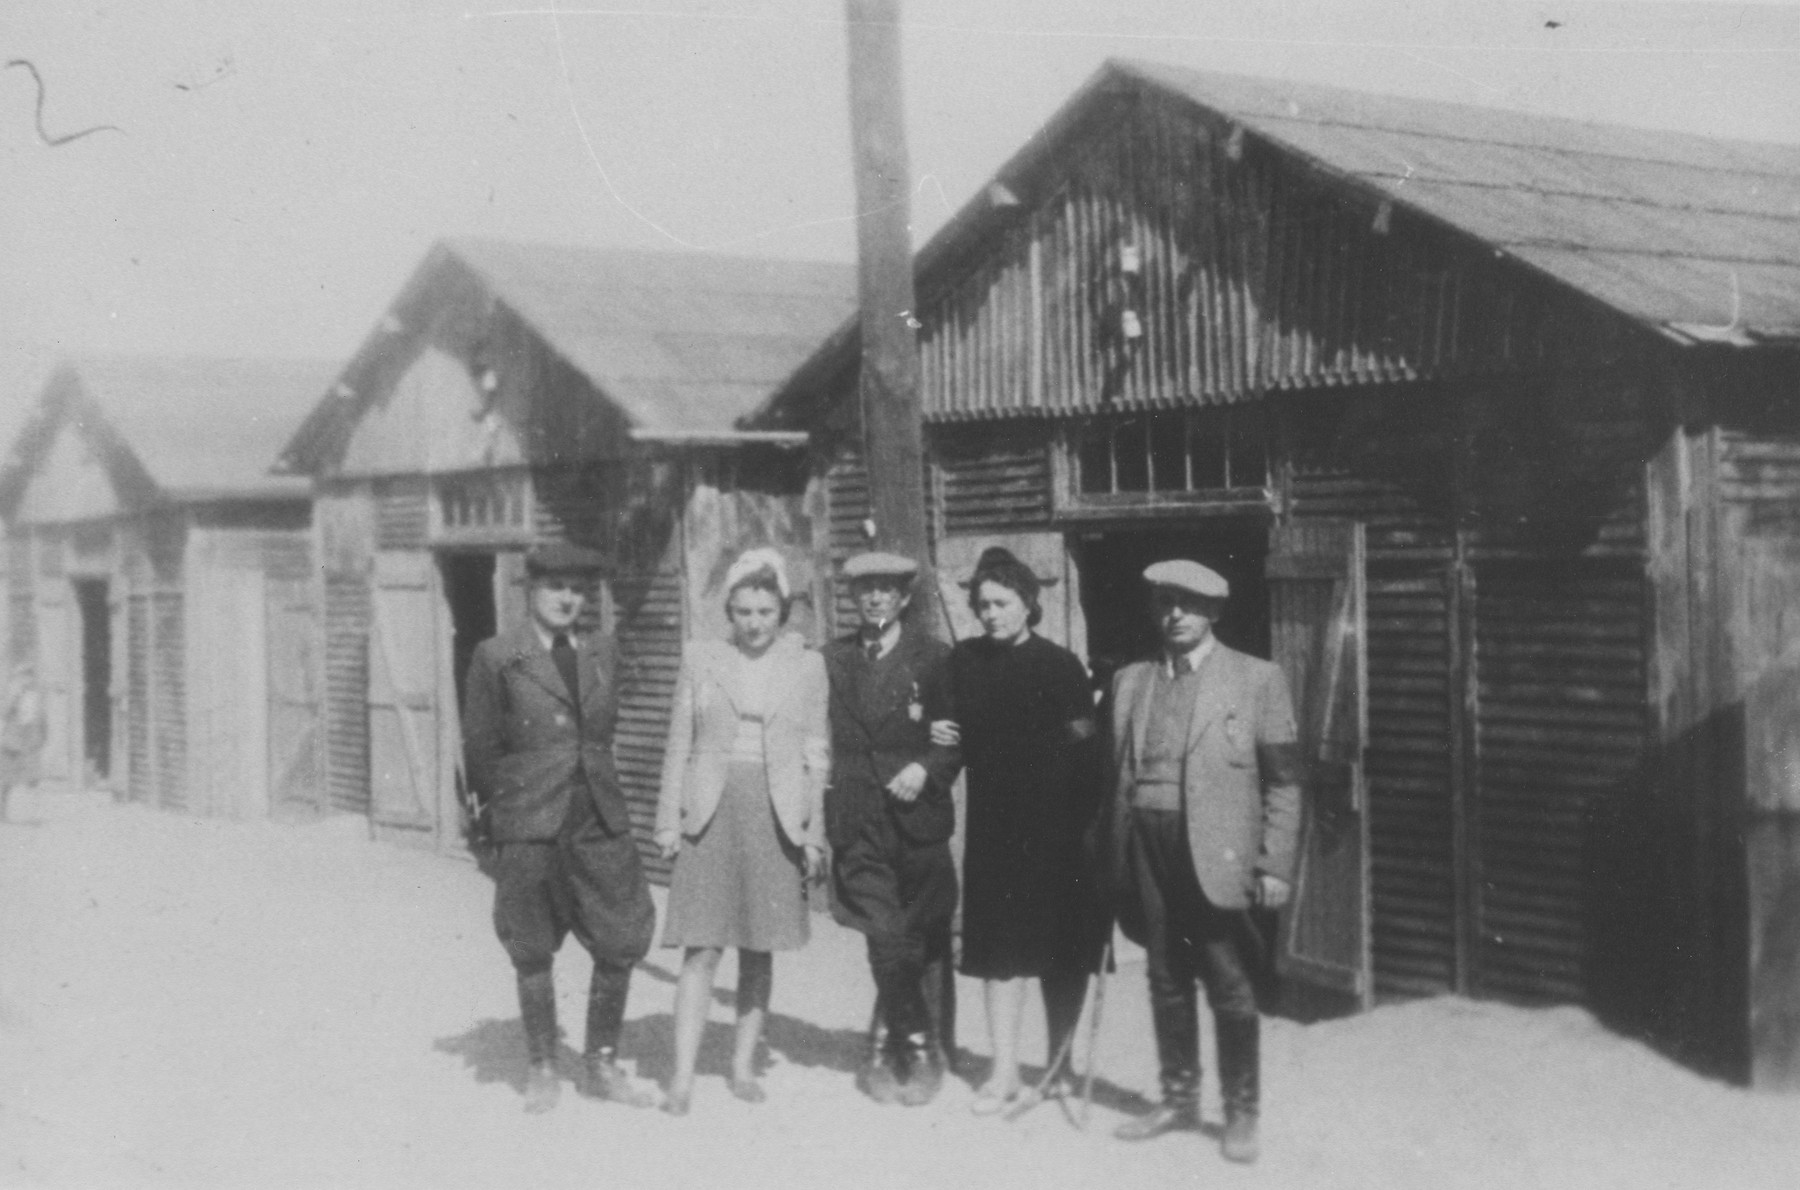 Five Jewish prisoners pose outside a row of barracks at the Belzec concentration camp.